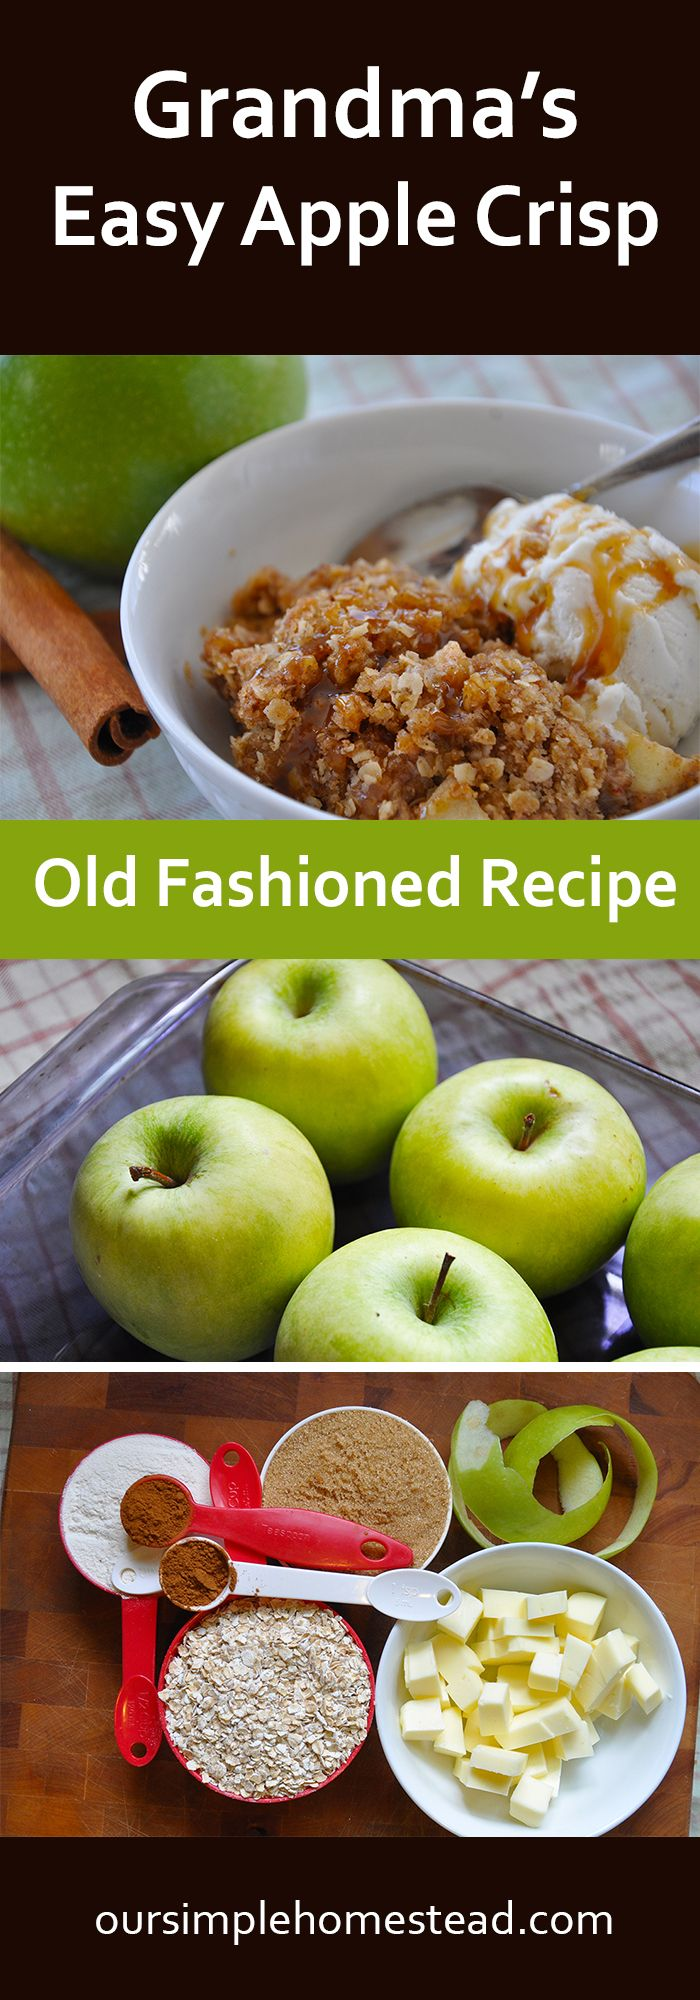 Easy Apple Crisp - Old Fashioned Recipe - Nothing makes a house feel more like a home than the smell of something baking in the oven! With a hint of fall in the air, I spent the day in the kitchen filling my house with a warm cinnamon and apple smell.